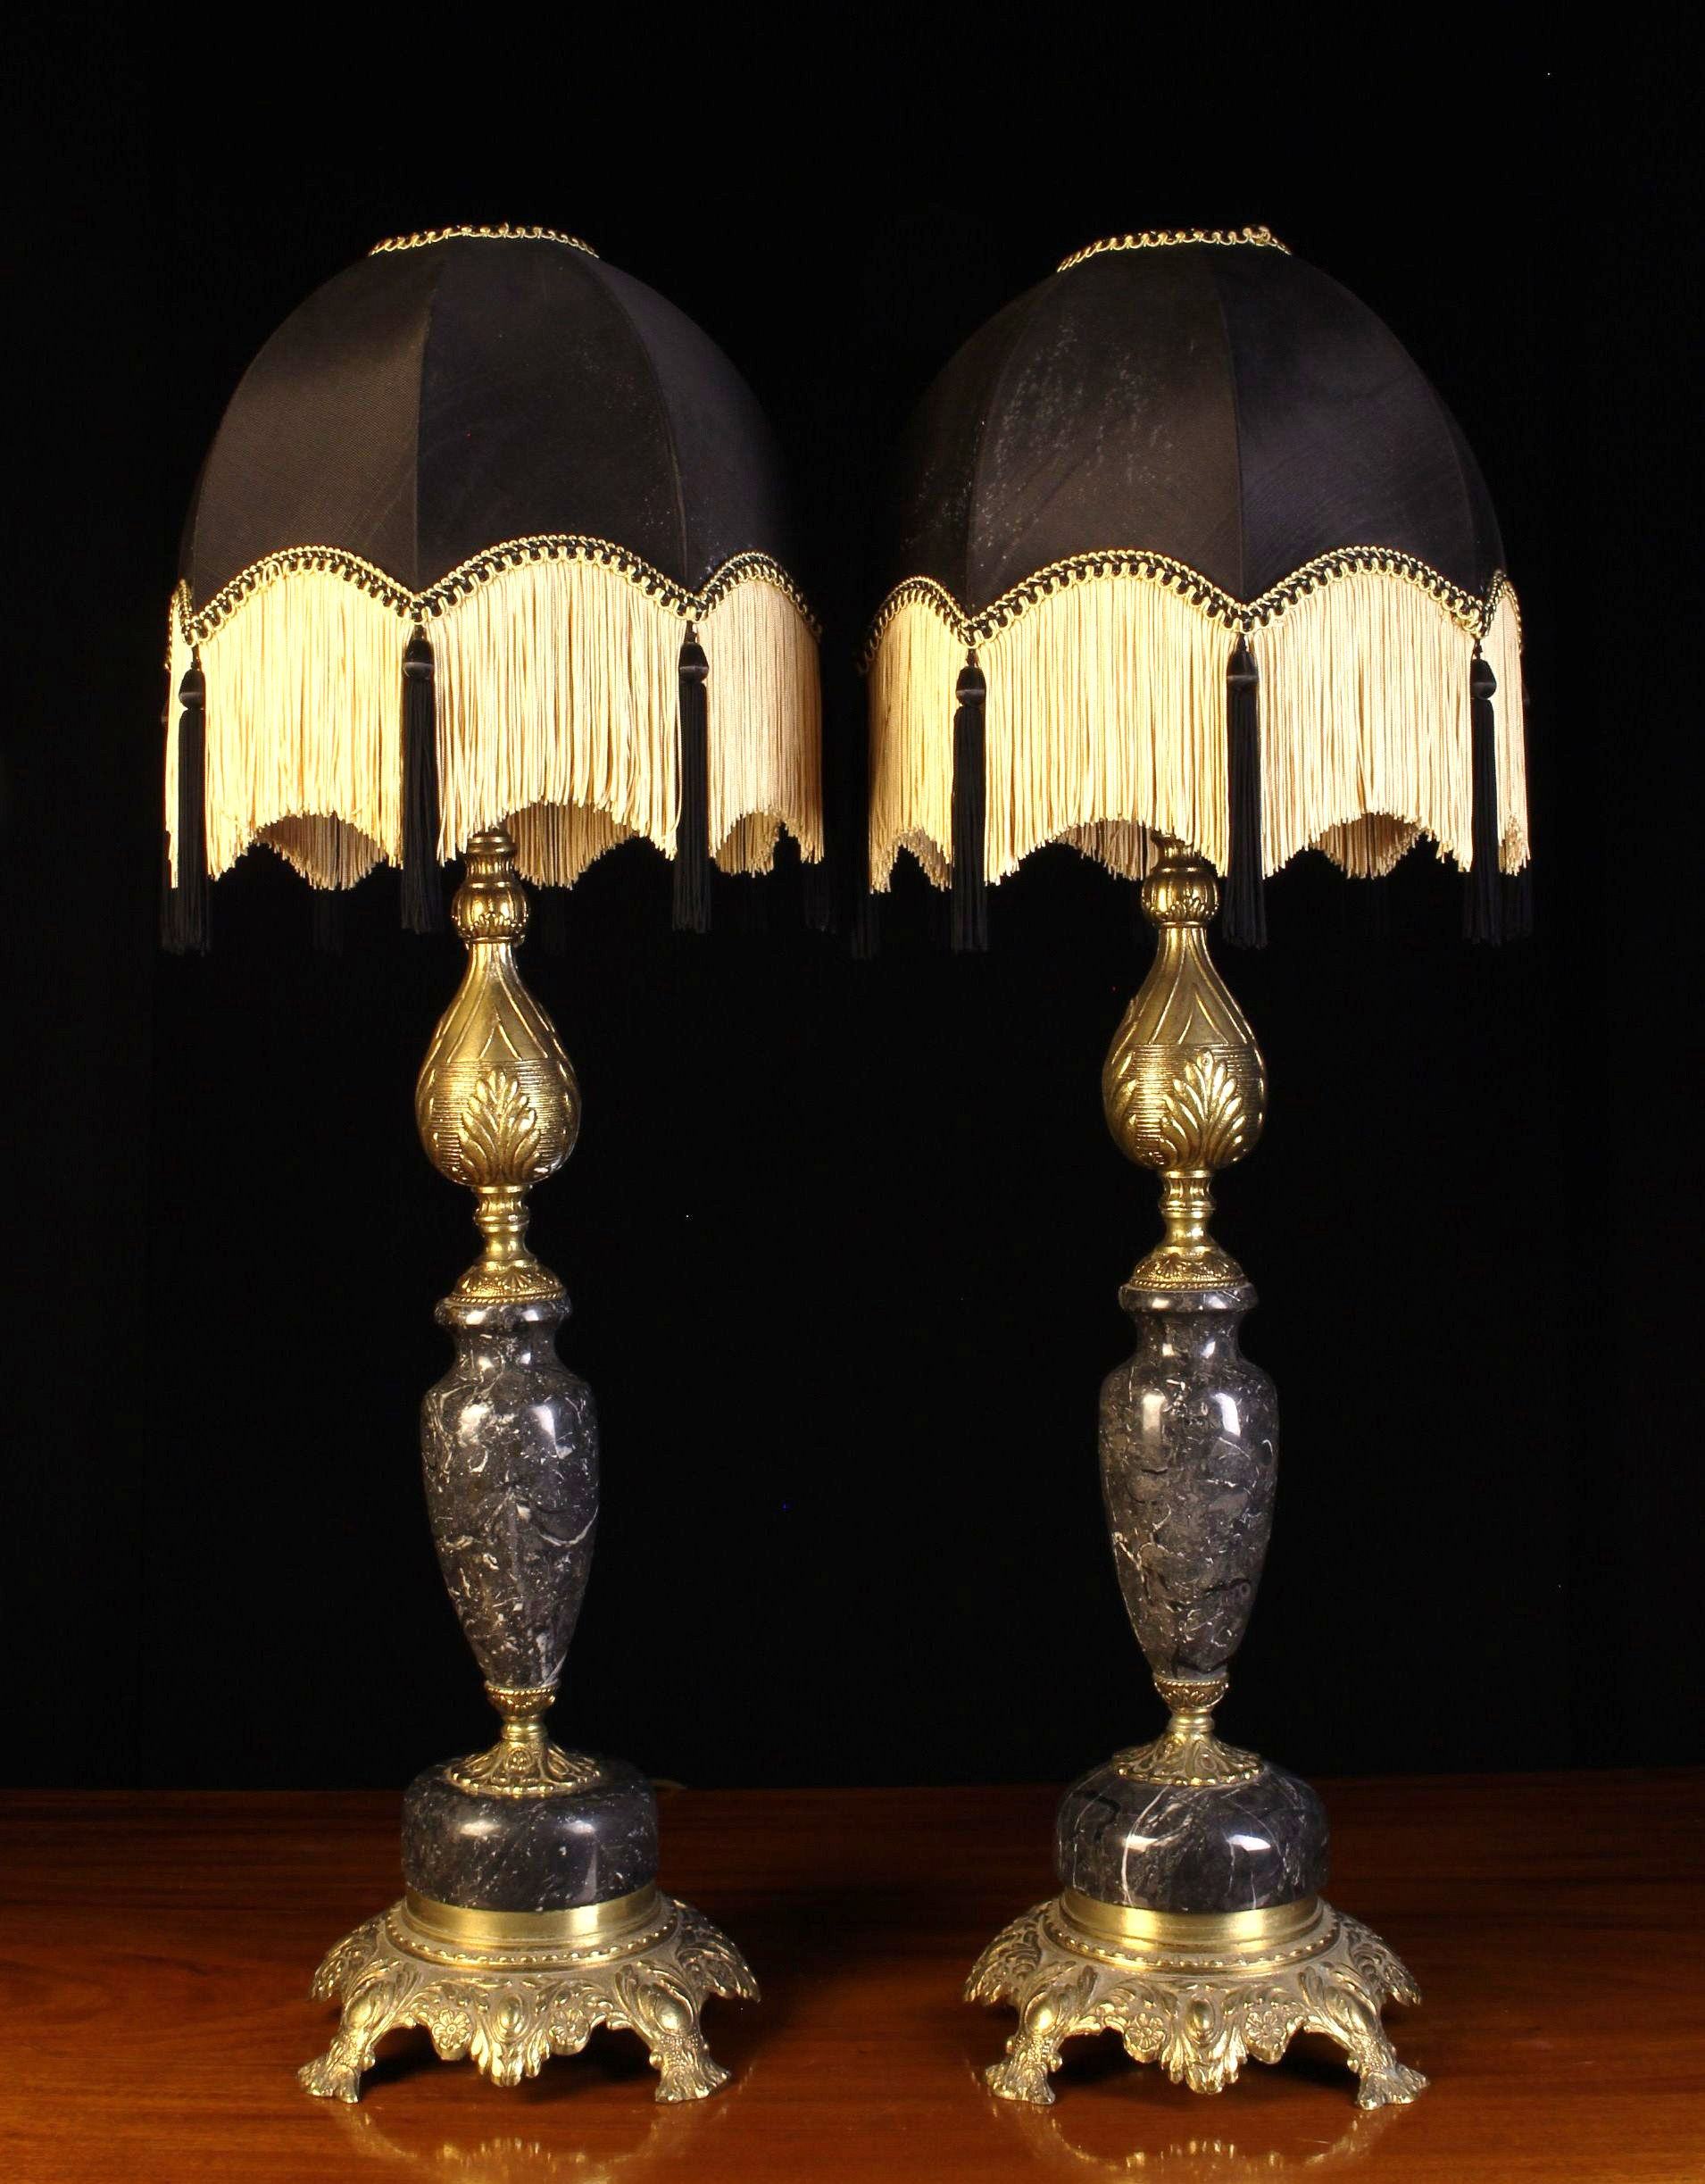 A Pair of Ornamental Cast Brass and 'Petit Granit' Marble Side Lamps with ornately cast stems